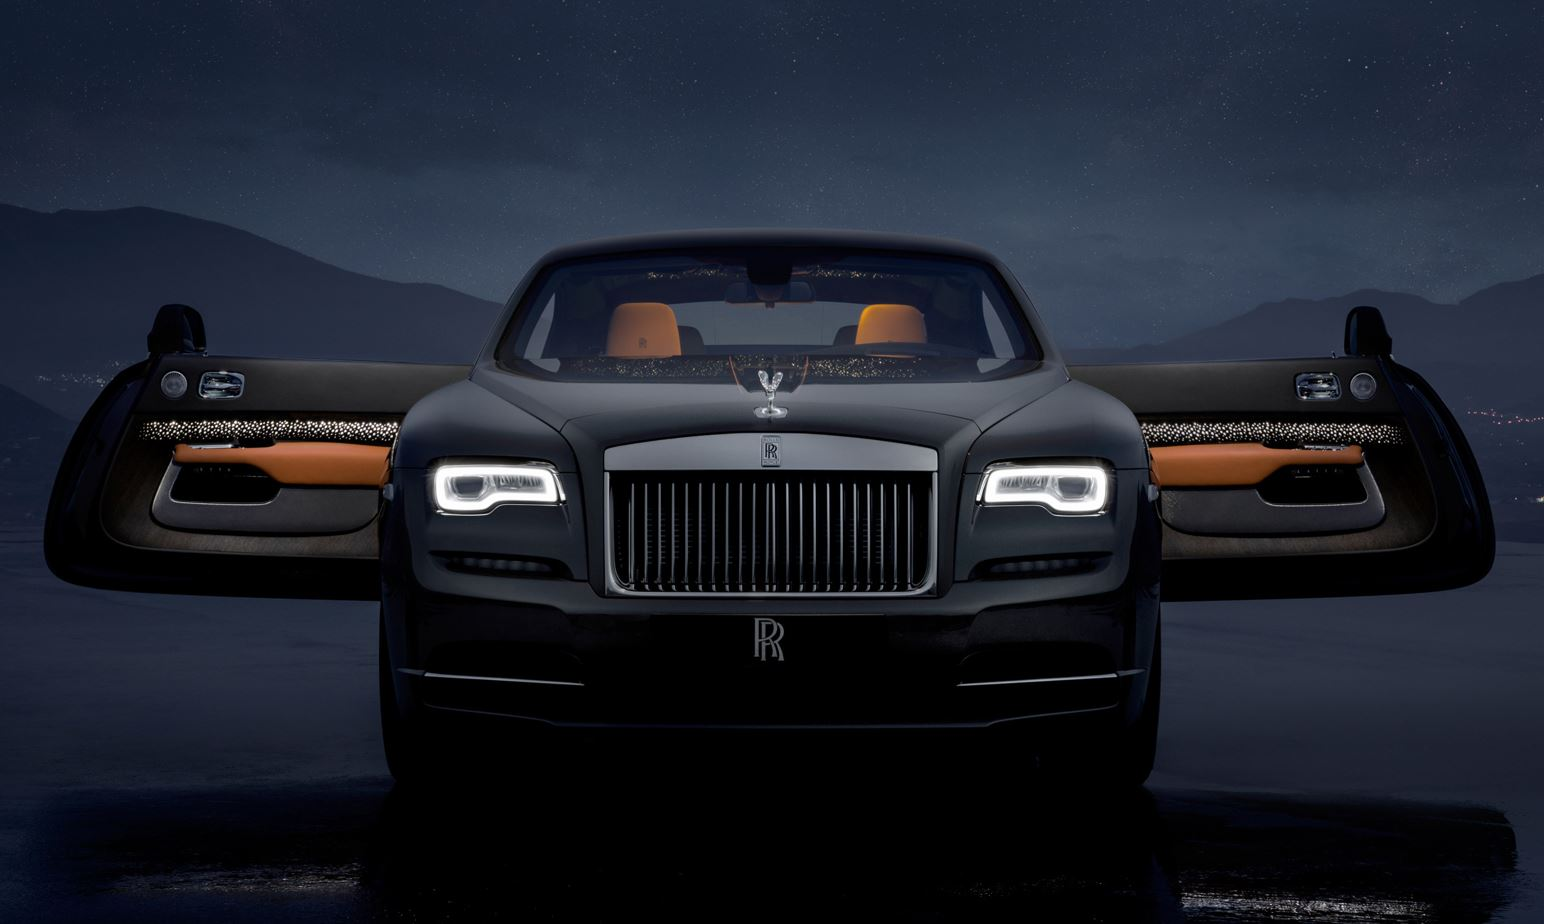 Rolls-Royce Wraith LUMINARY EDITION 2dr Auto - 1 of 55 6.6 Automatic Coupe